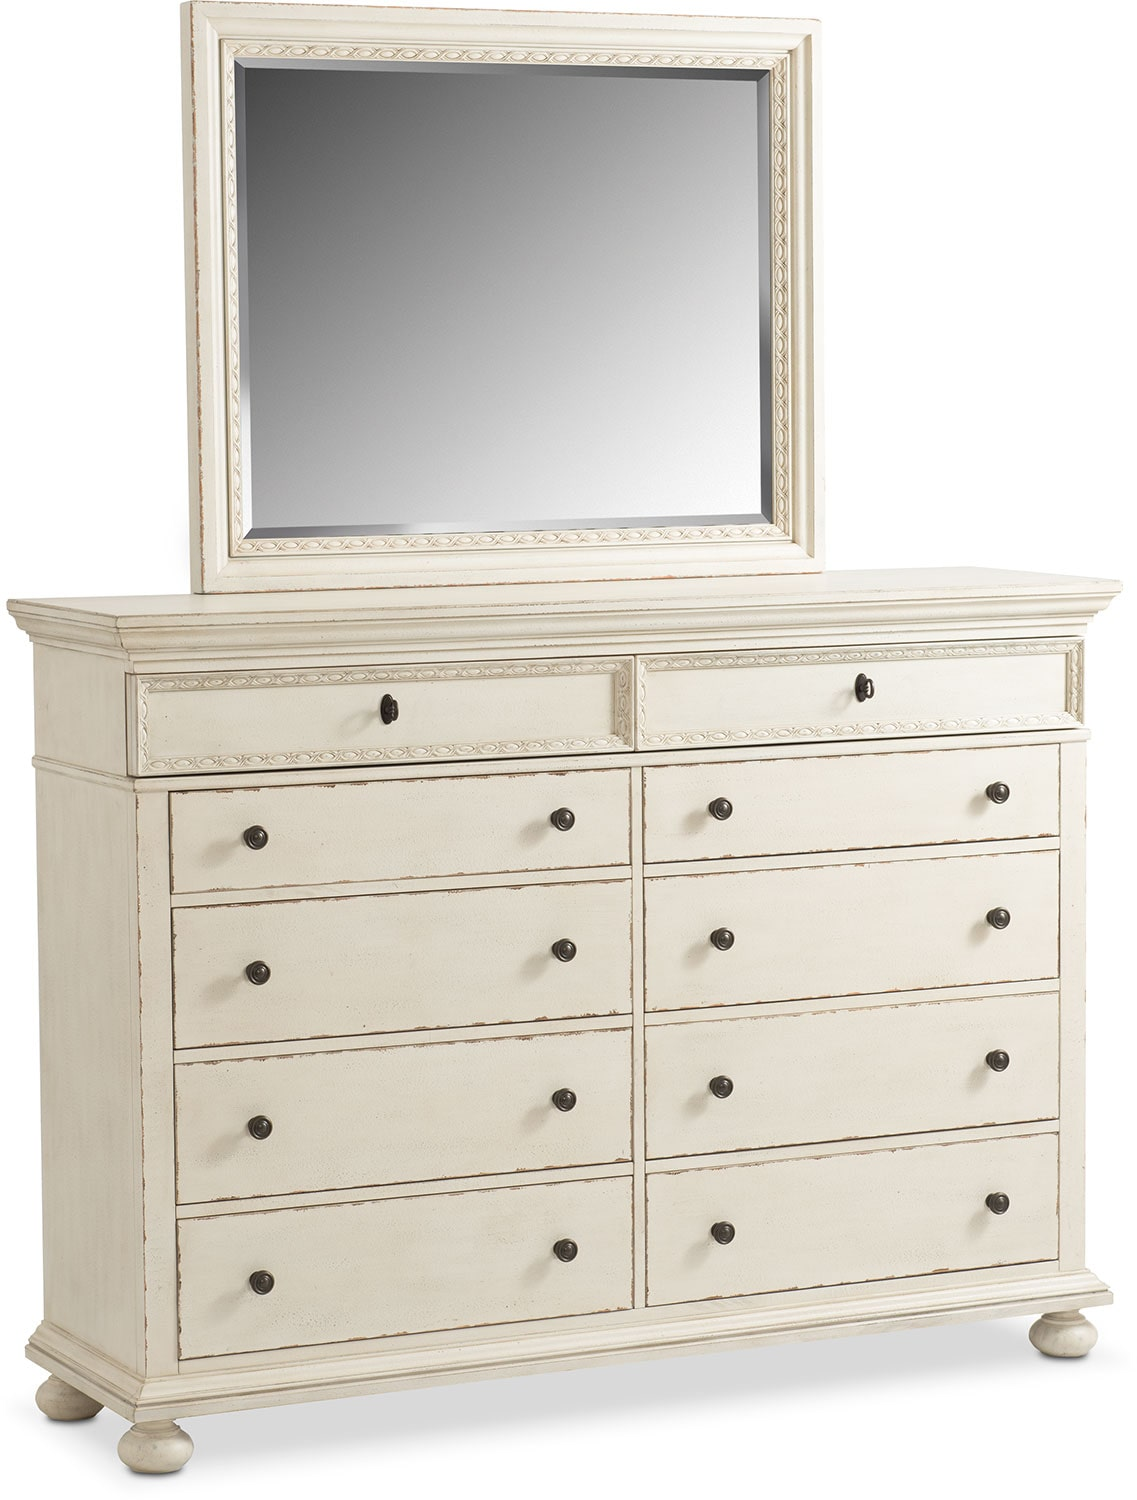 100 white drawer chest buy bailey chest of drawers white on